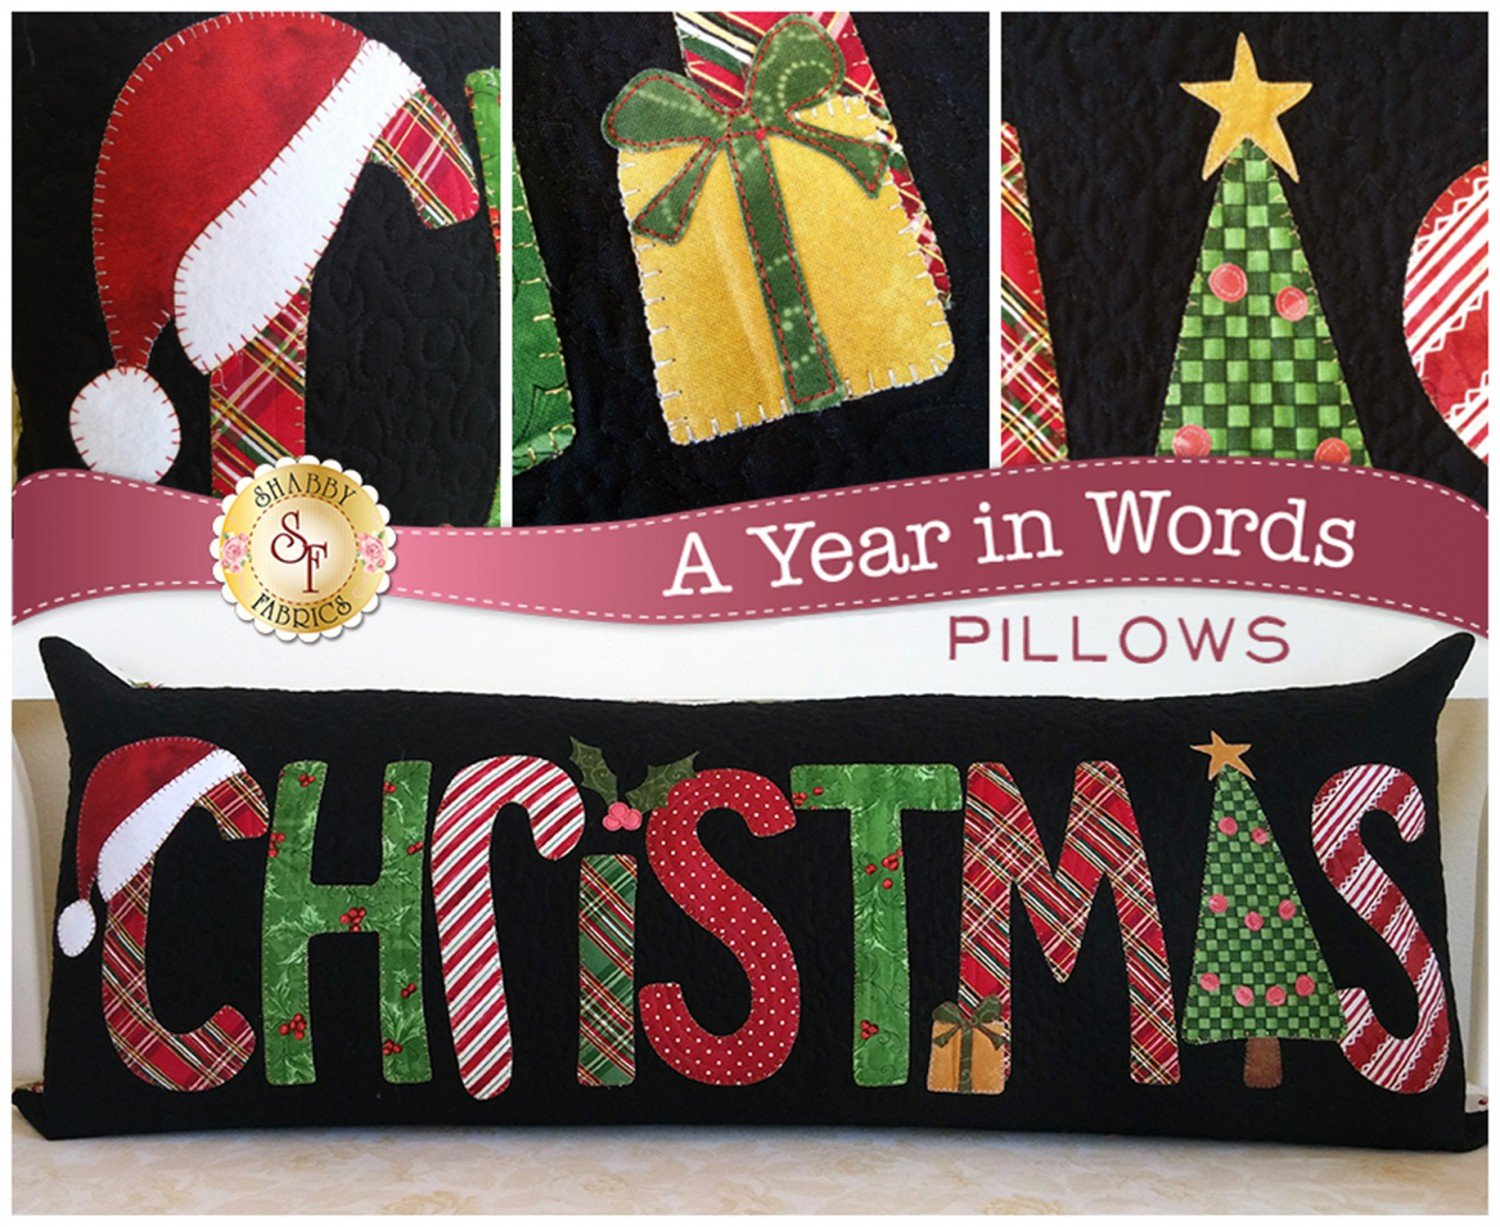 A Year In Words Christmas Pillow Patterns from Shabby Fabrics